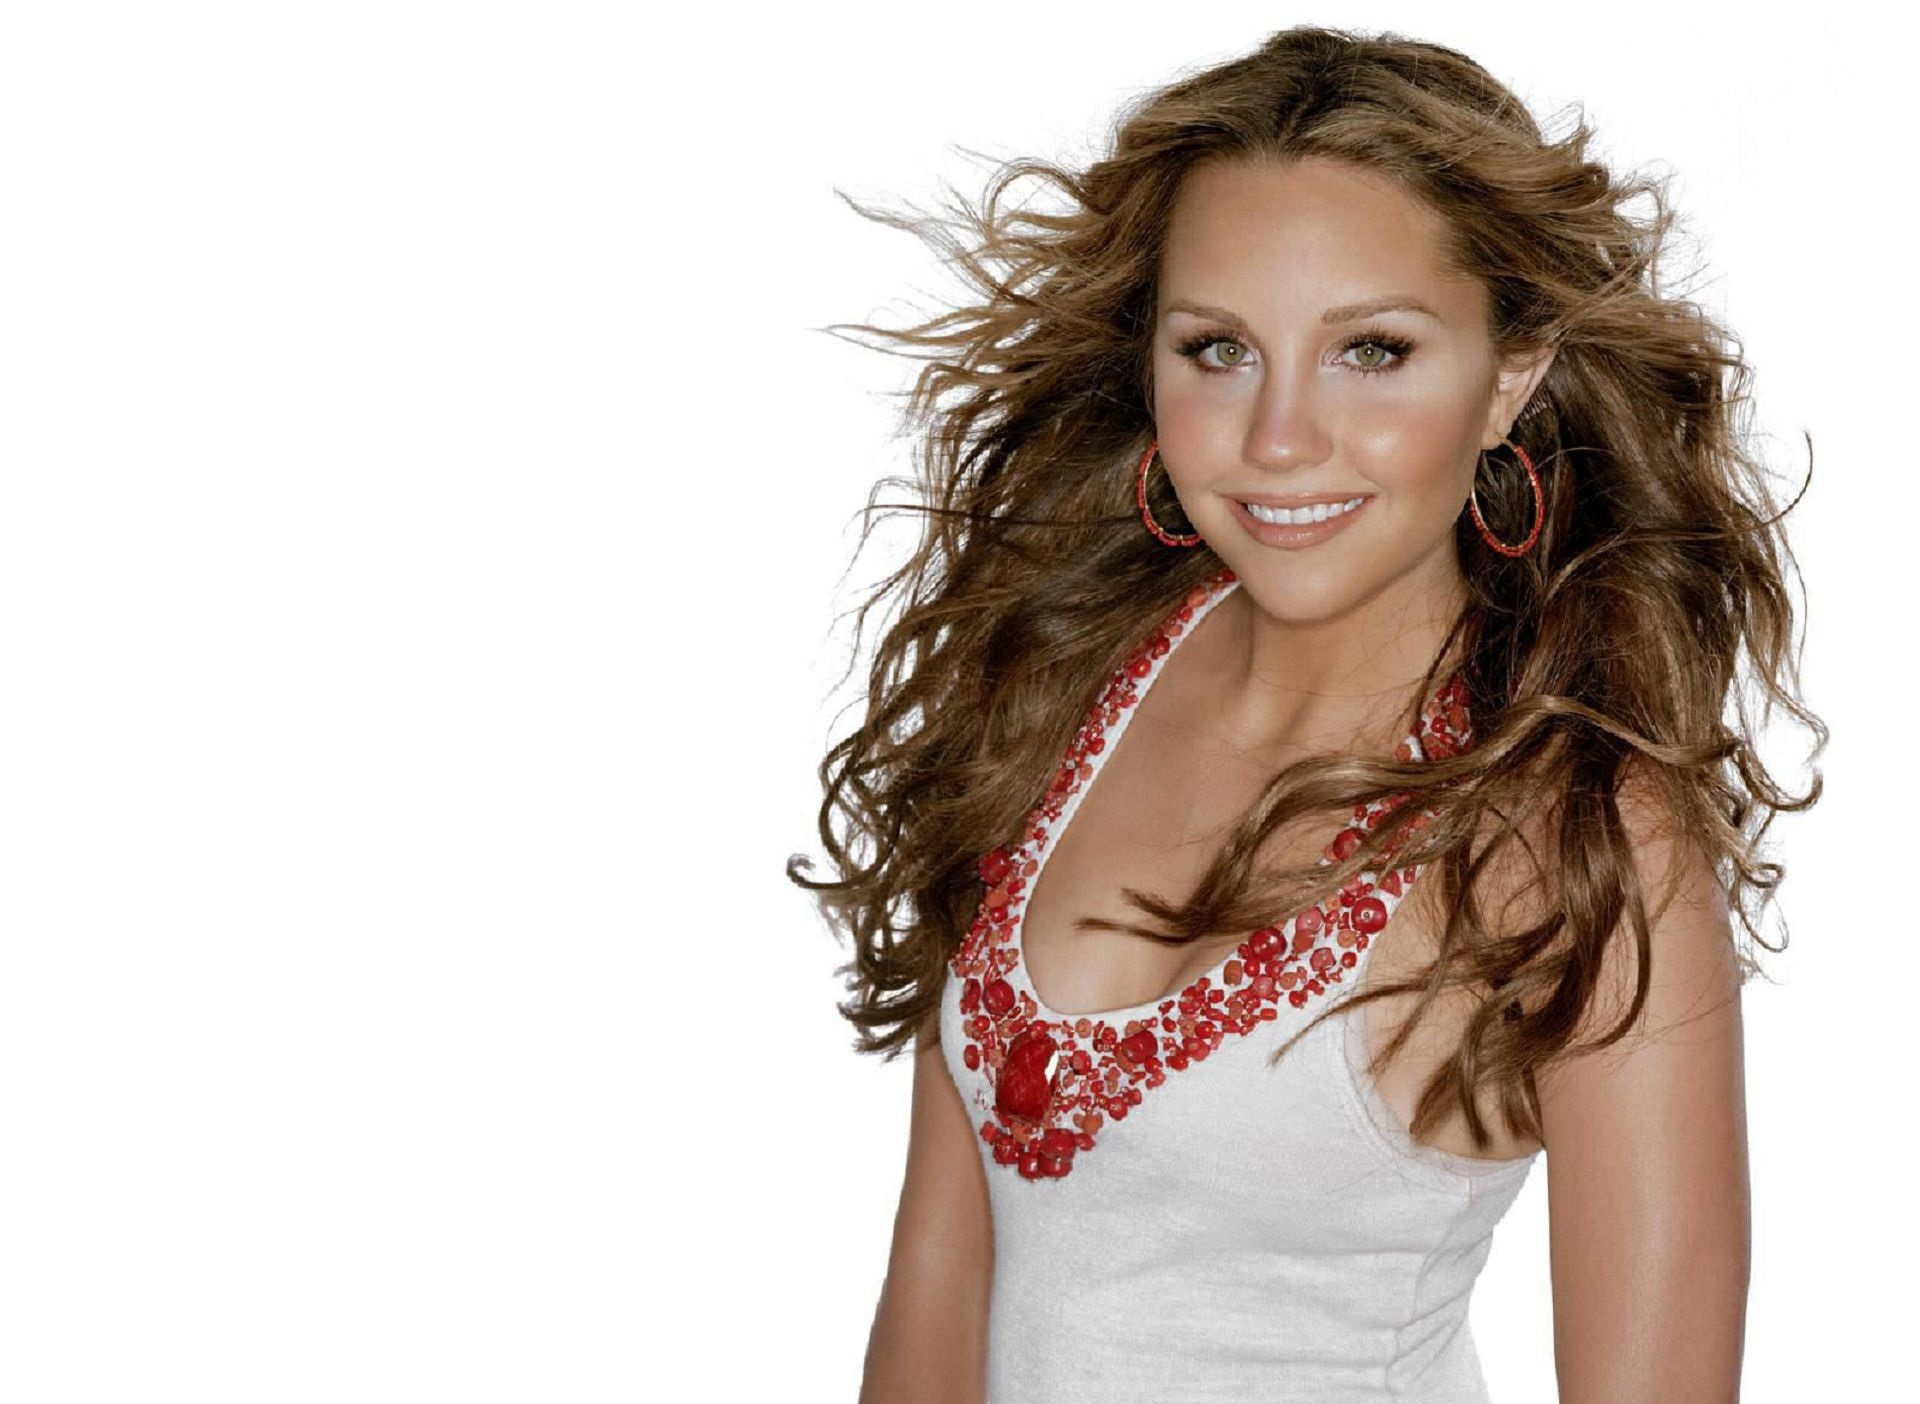 Amanda Bynes Wallpapers Backgrounds